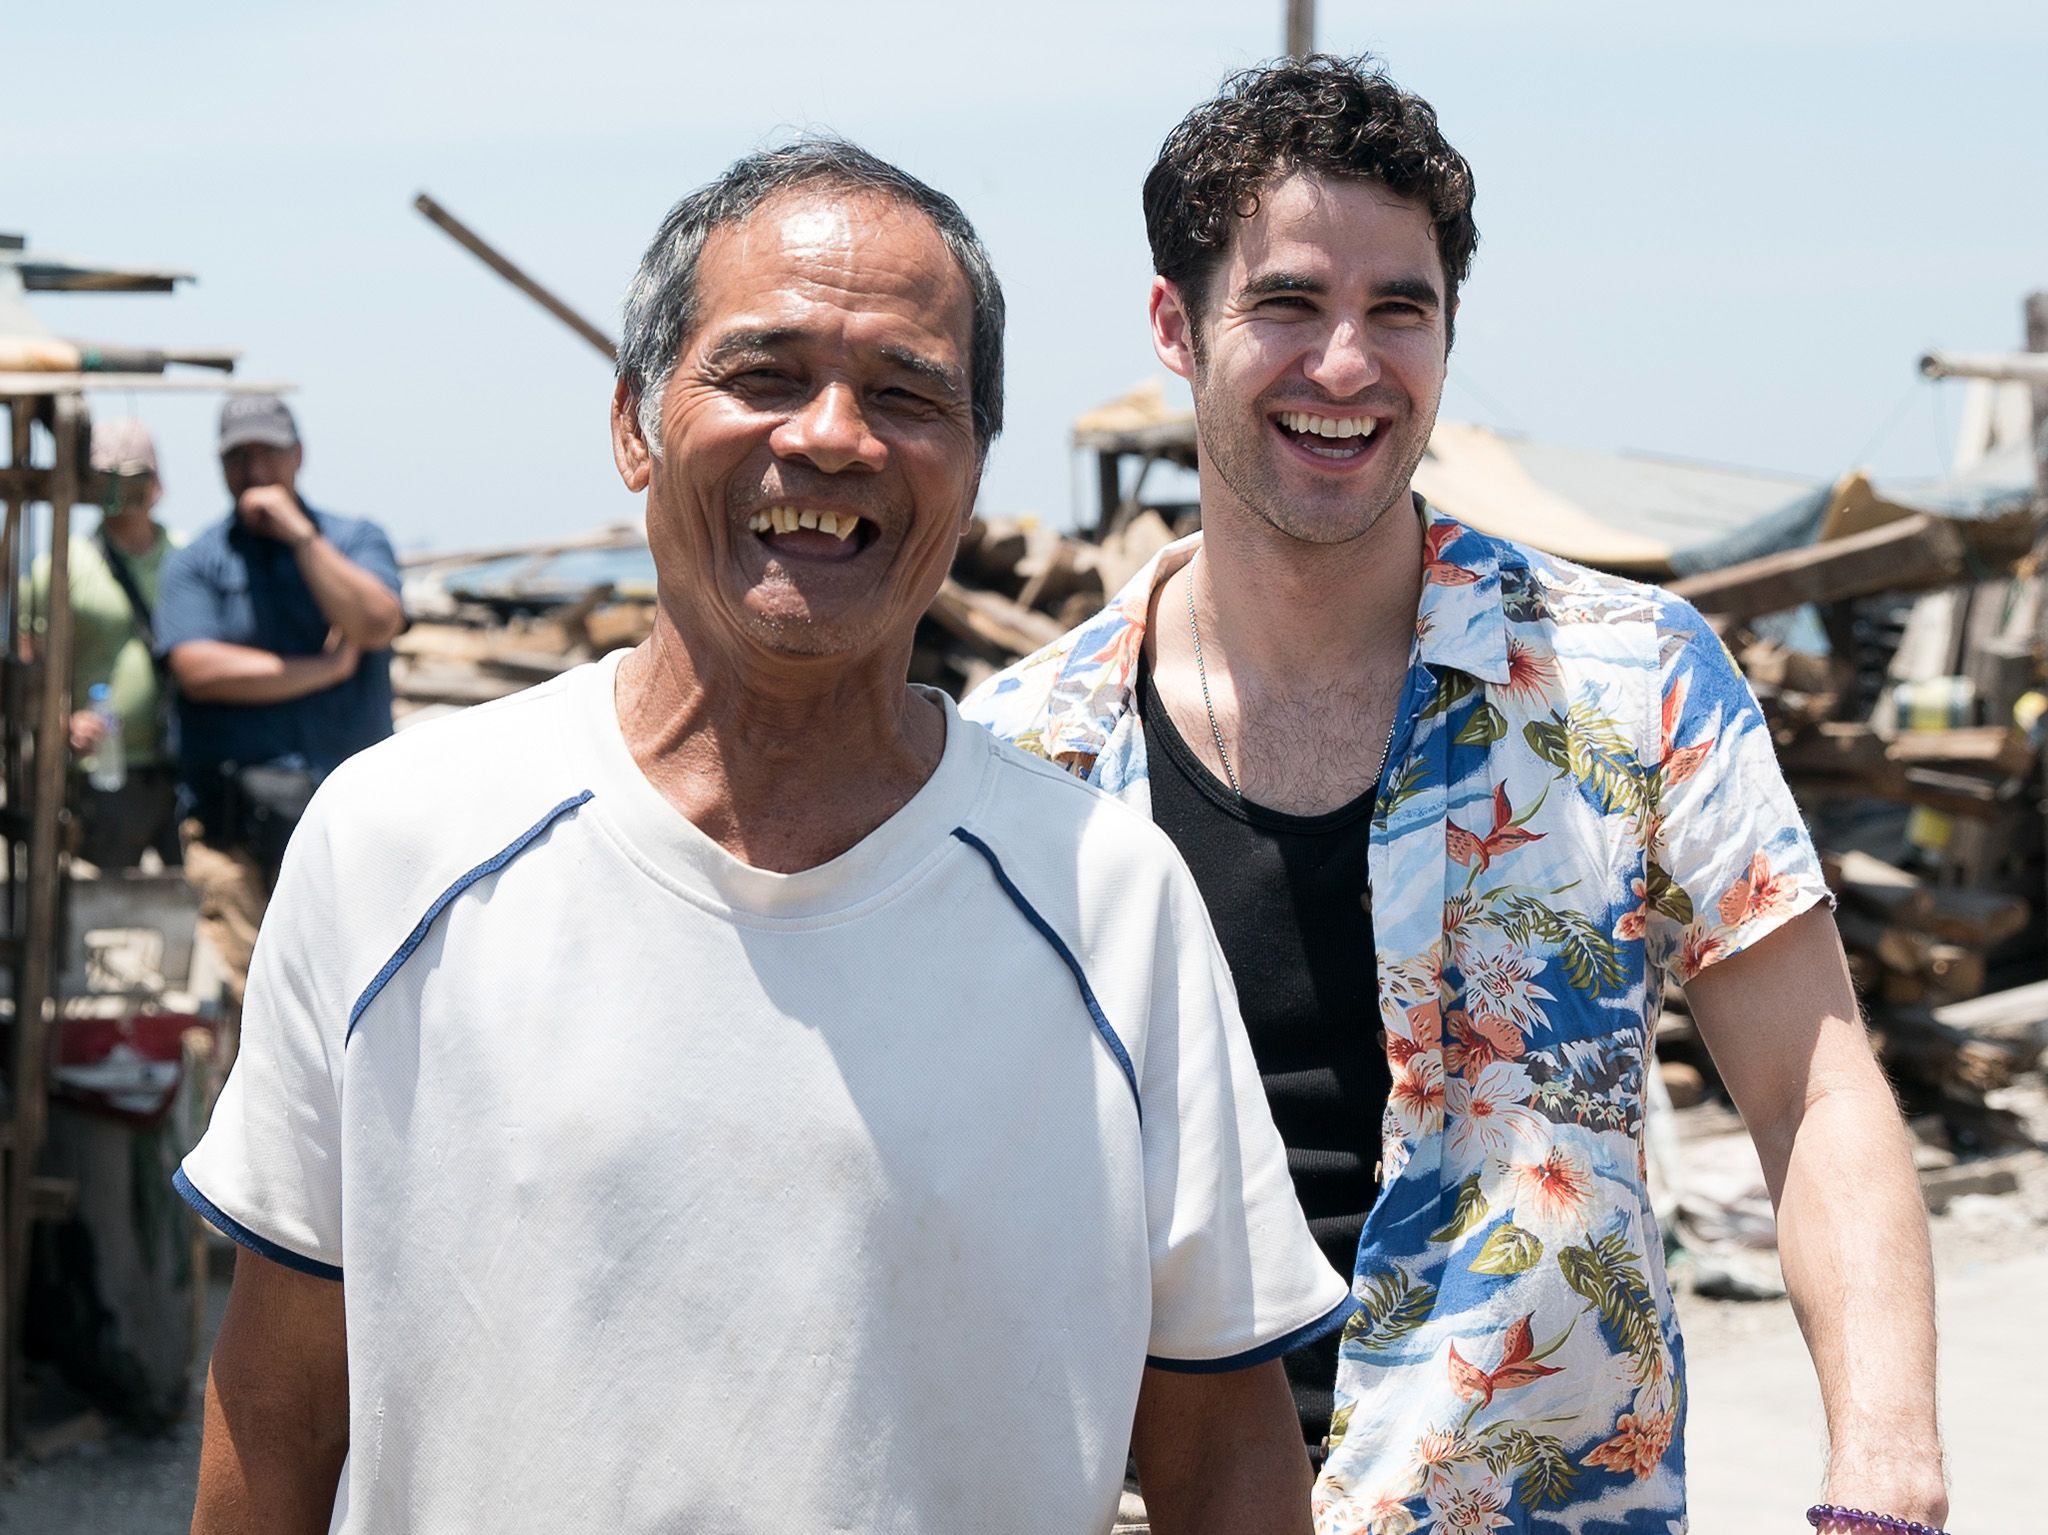 Daren Criss (right) jokes with a local fisherman. The World Bank estimates there are 25 to 27... [Photo of the day - September 2019]